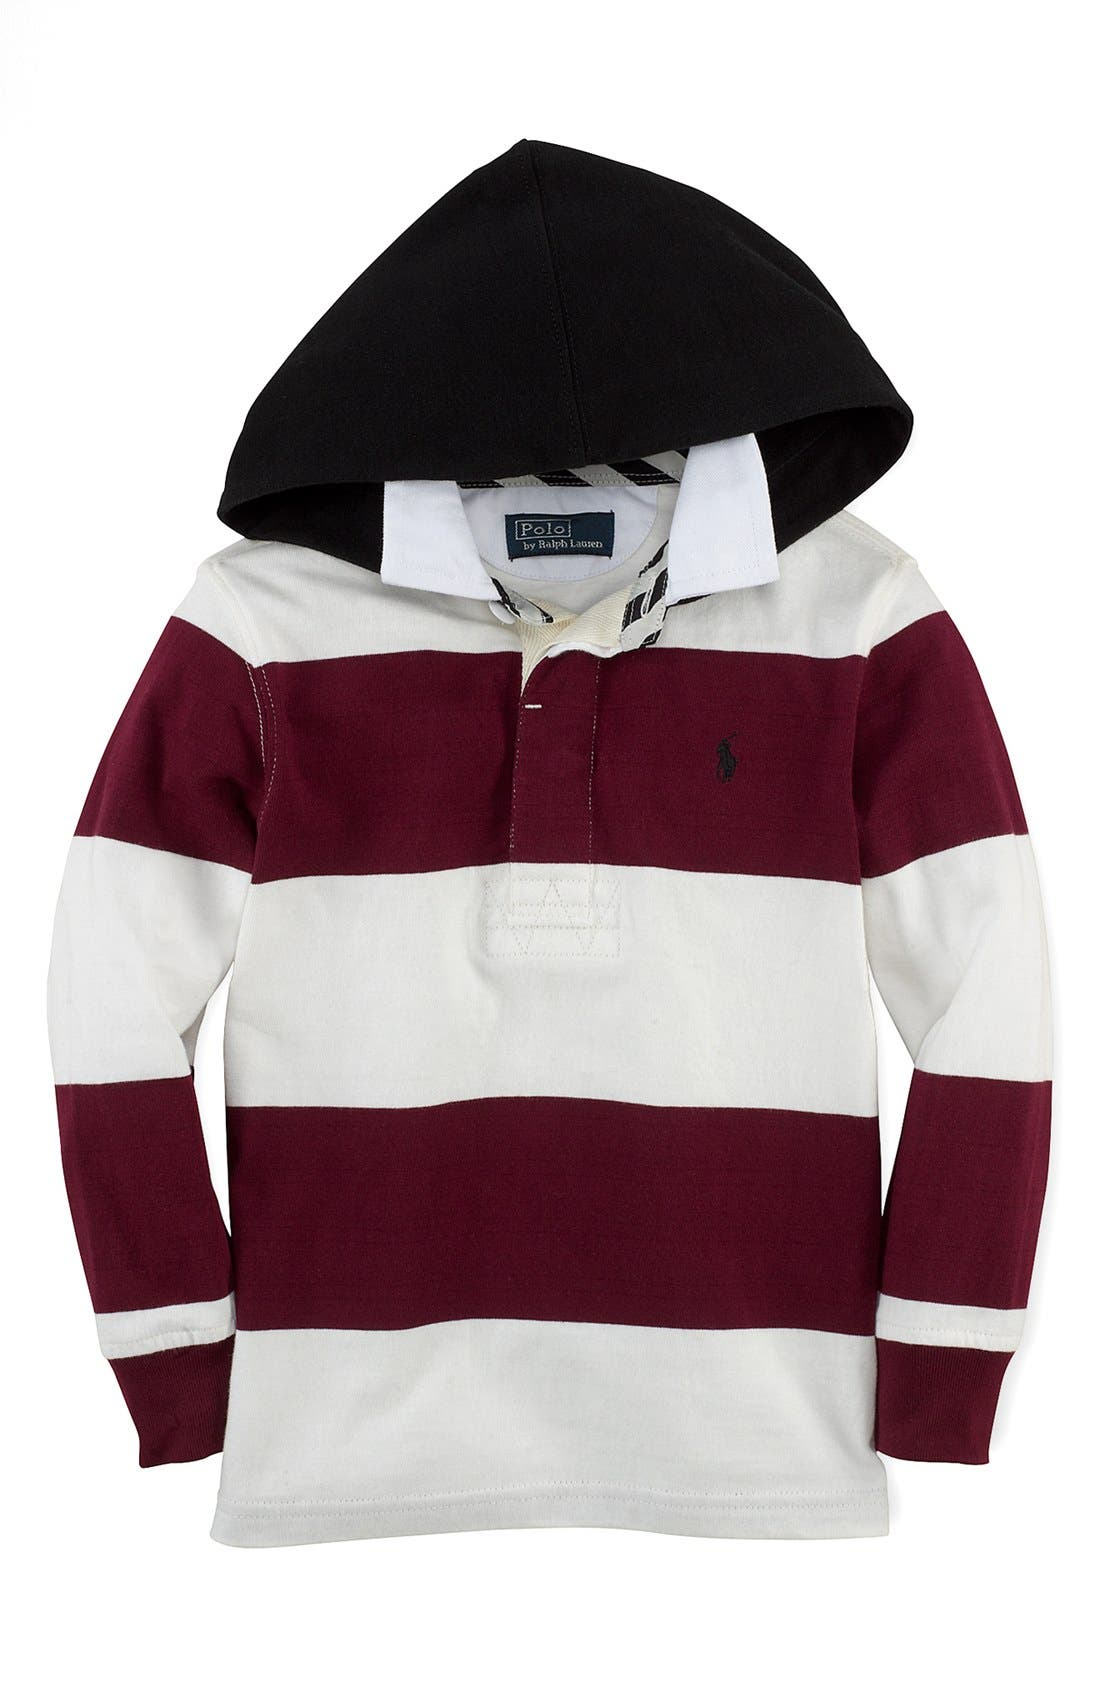 Main Image - Ralph Lauren Rugby Stripe Hoodie (Toddler Boys)